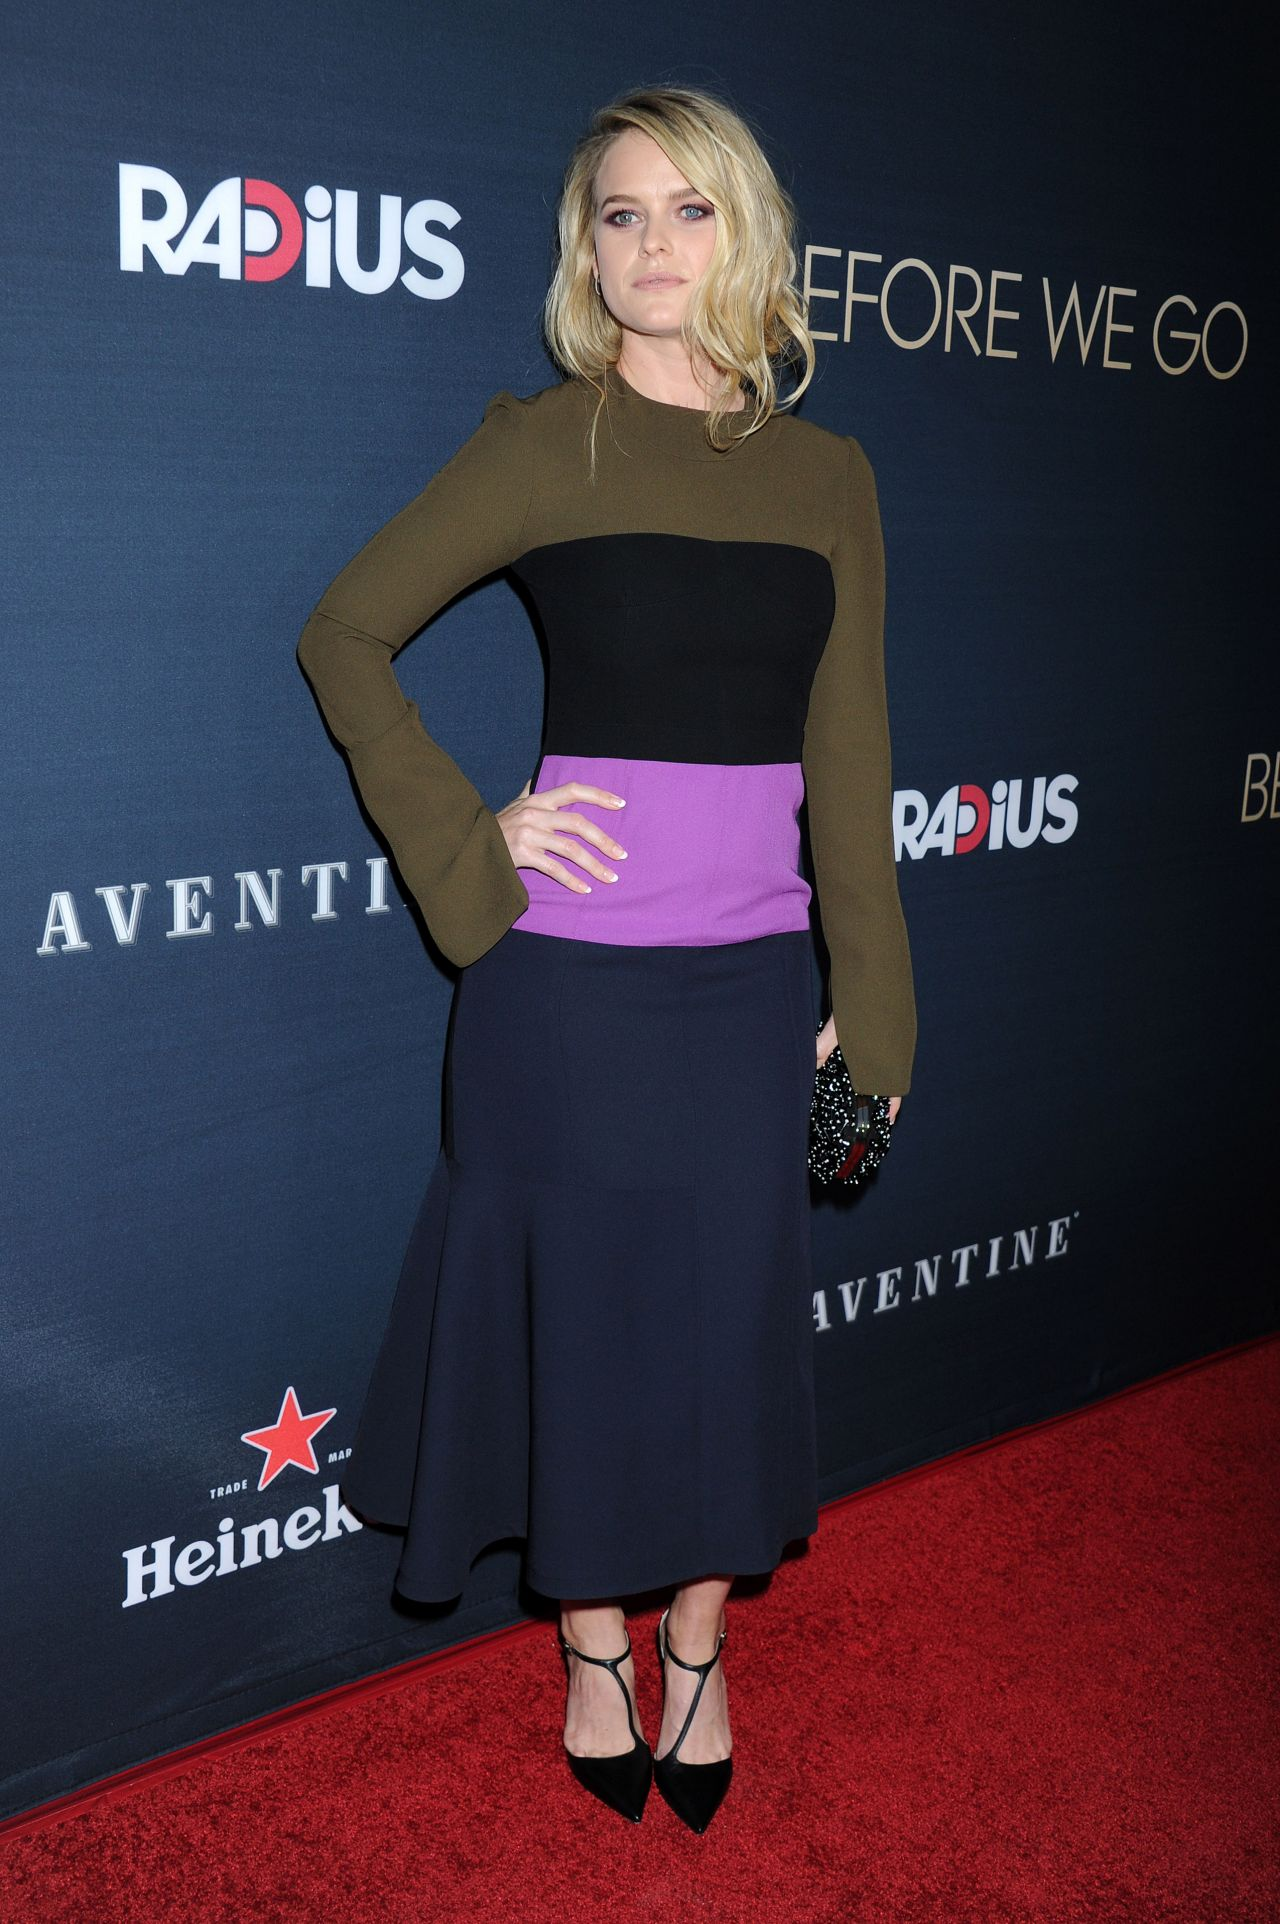 alice-eve-before-we-go-premiere-in-hollywood_24